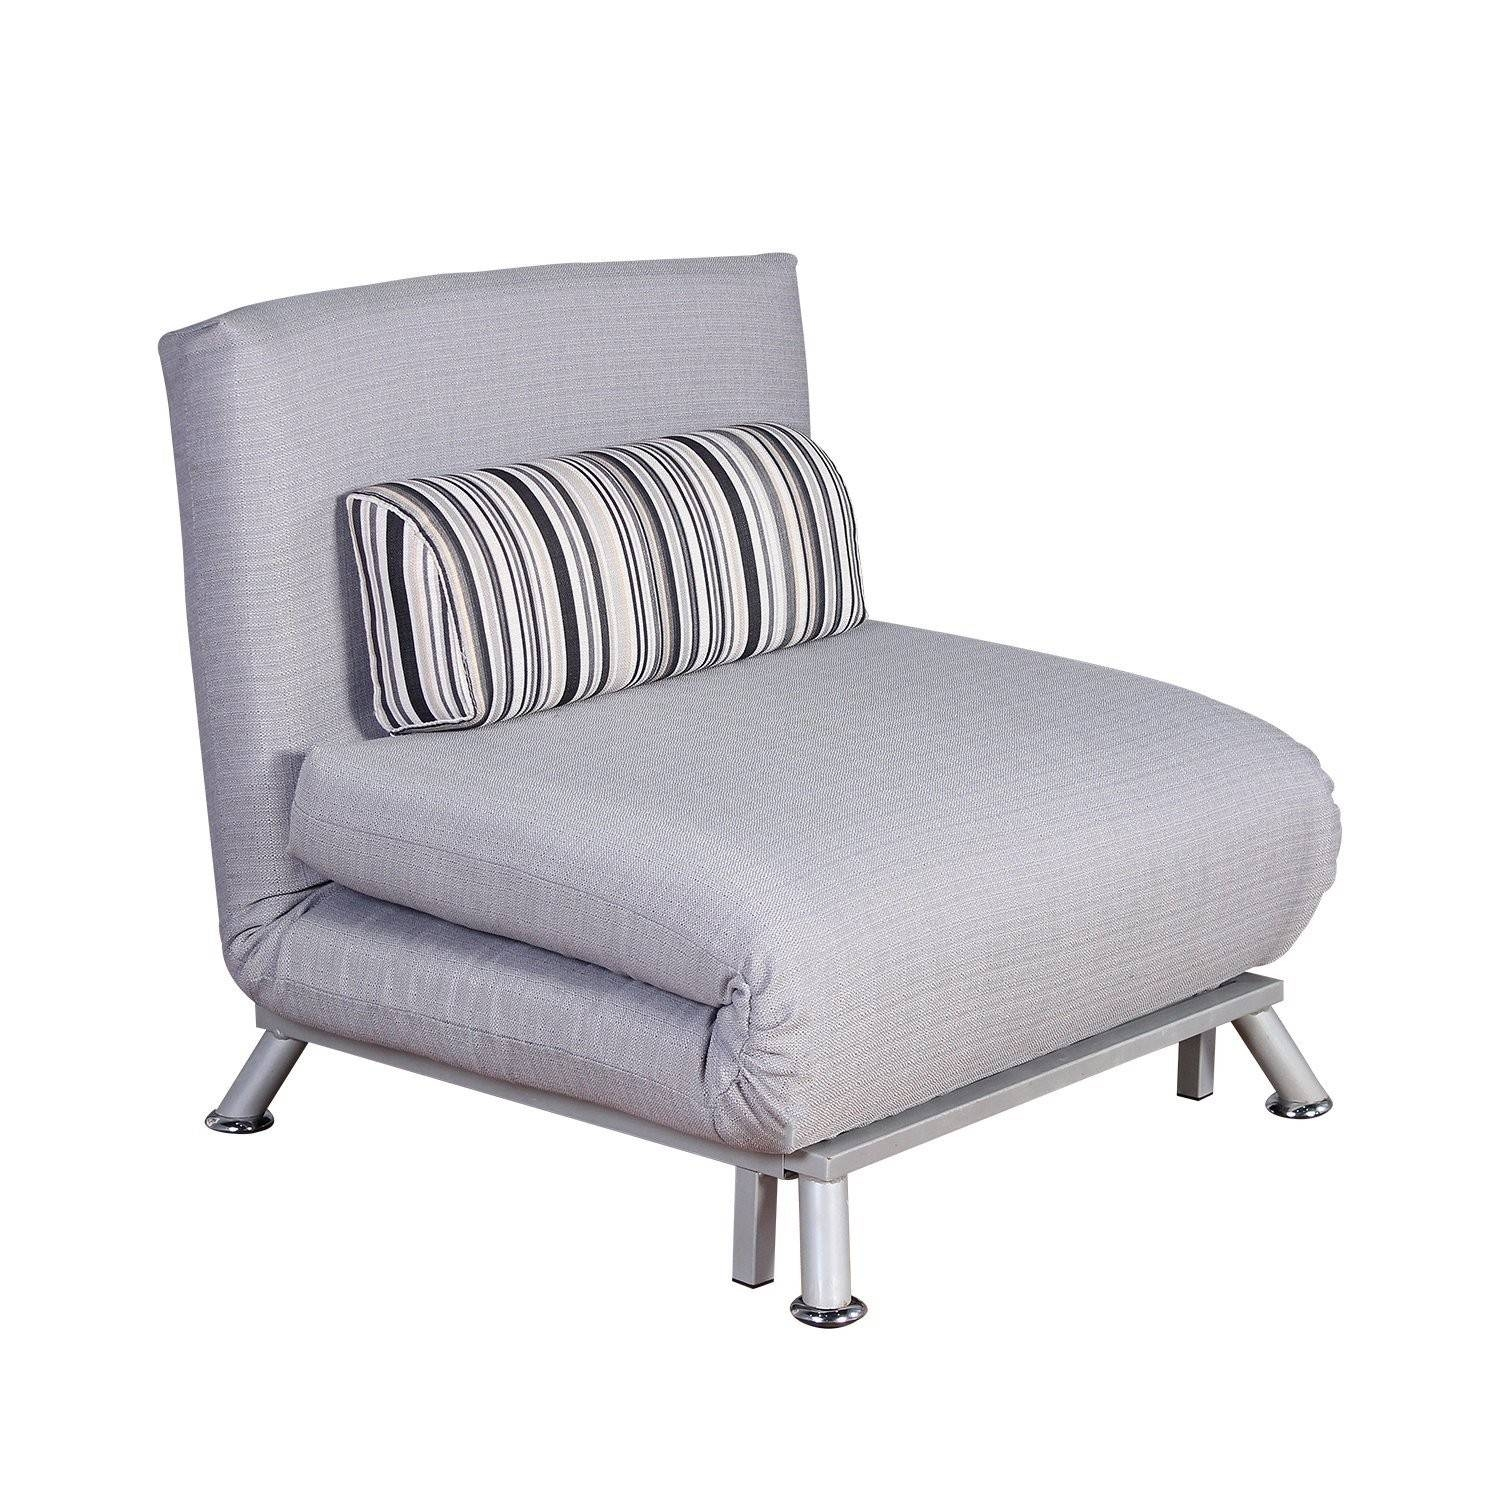 Darwin Single Futon Chair Bed Best Quality Single Futon - Home with Single Futon Sofa Beds (Image 3 of 15)